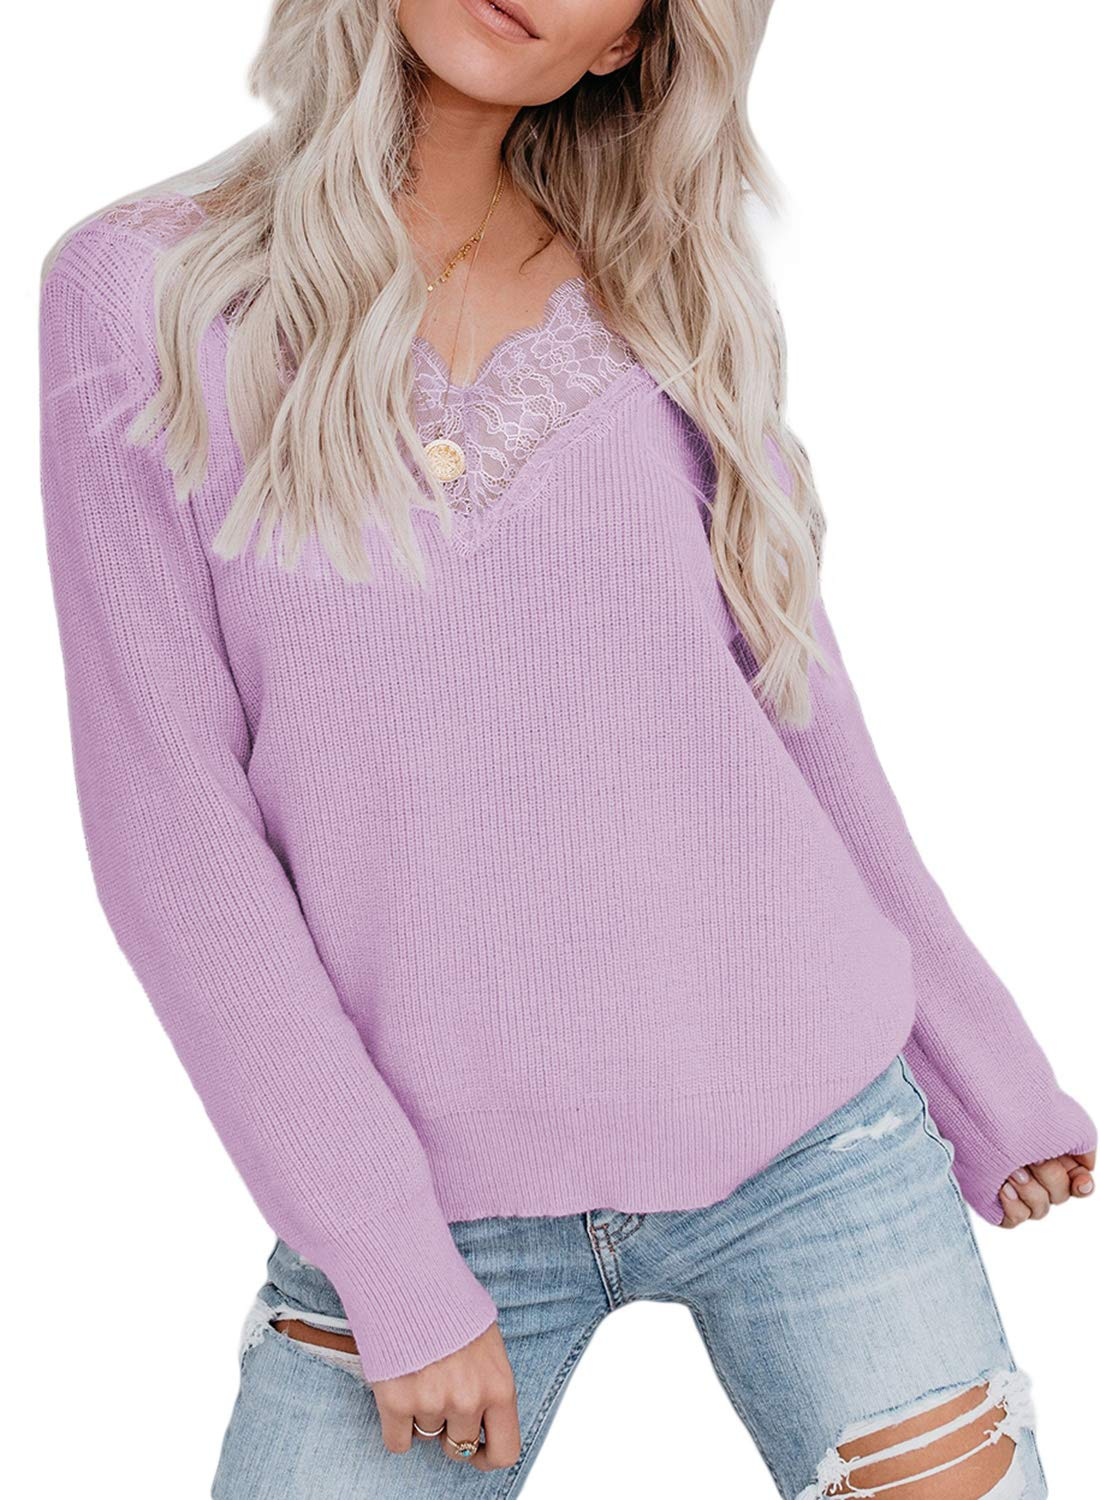 Chase Secret Womens Casual V Neck Lace Patchwork Long Sleeve Solid Color Pullover Sweater Tops S-XL